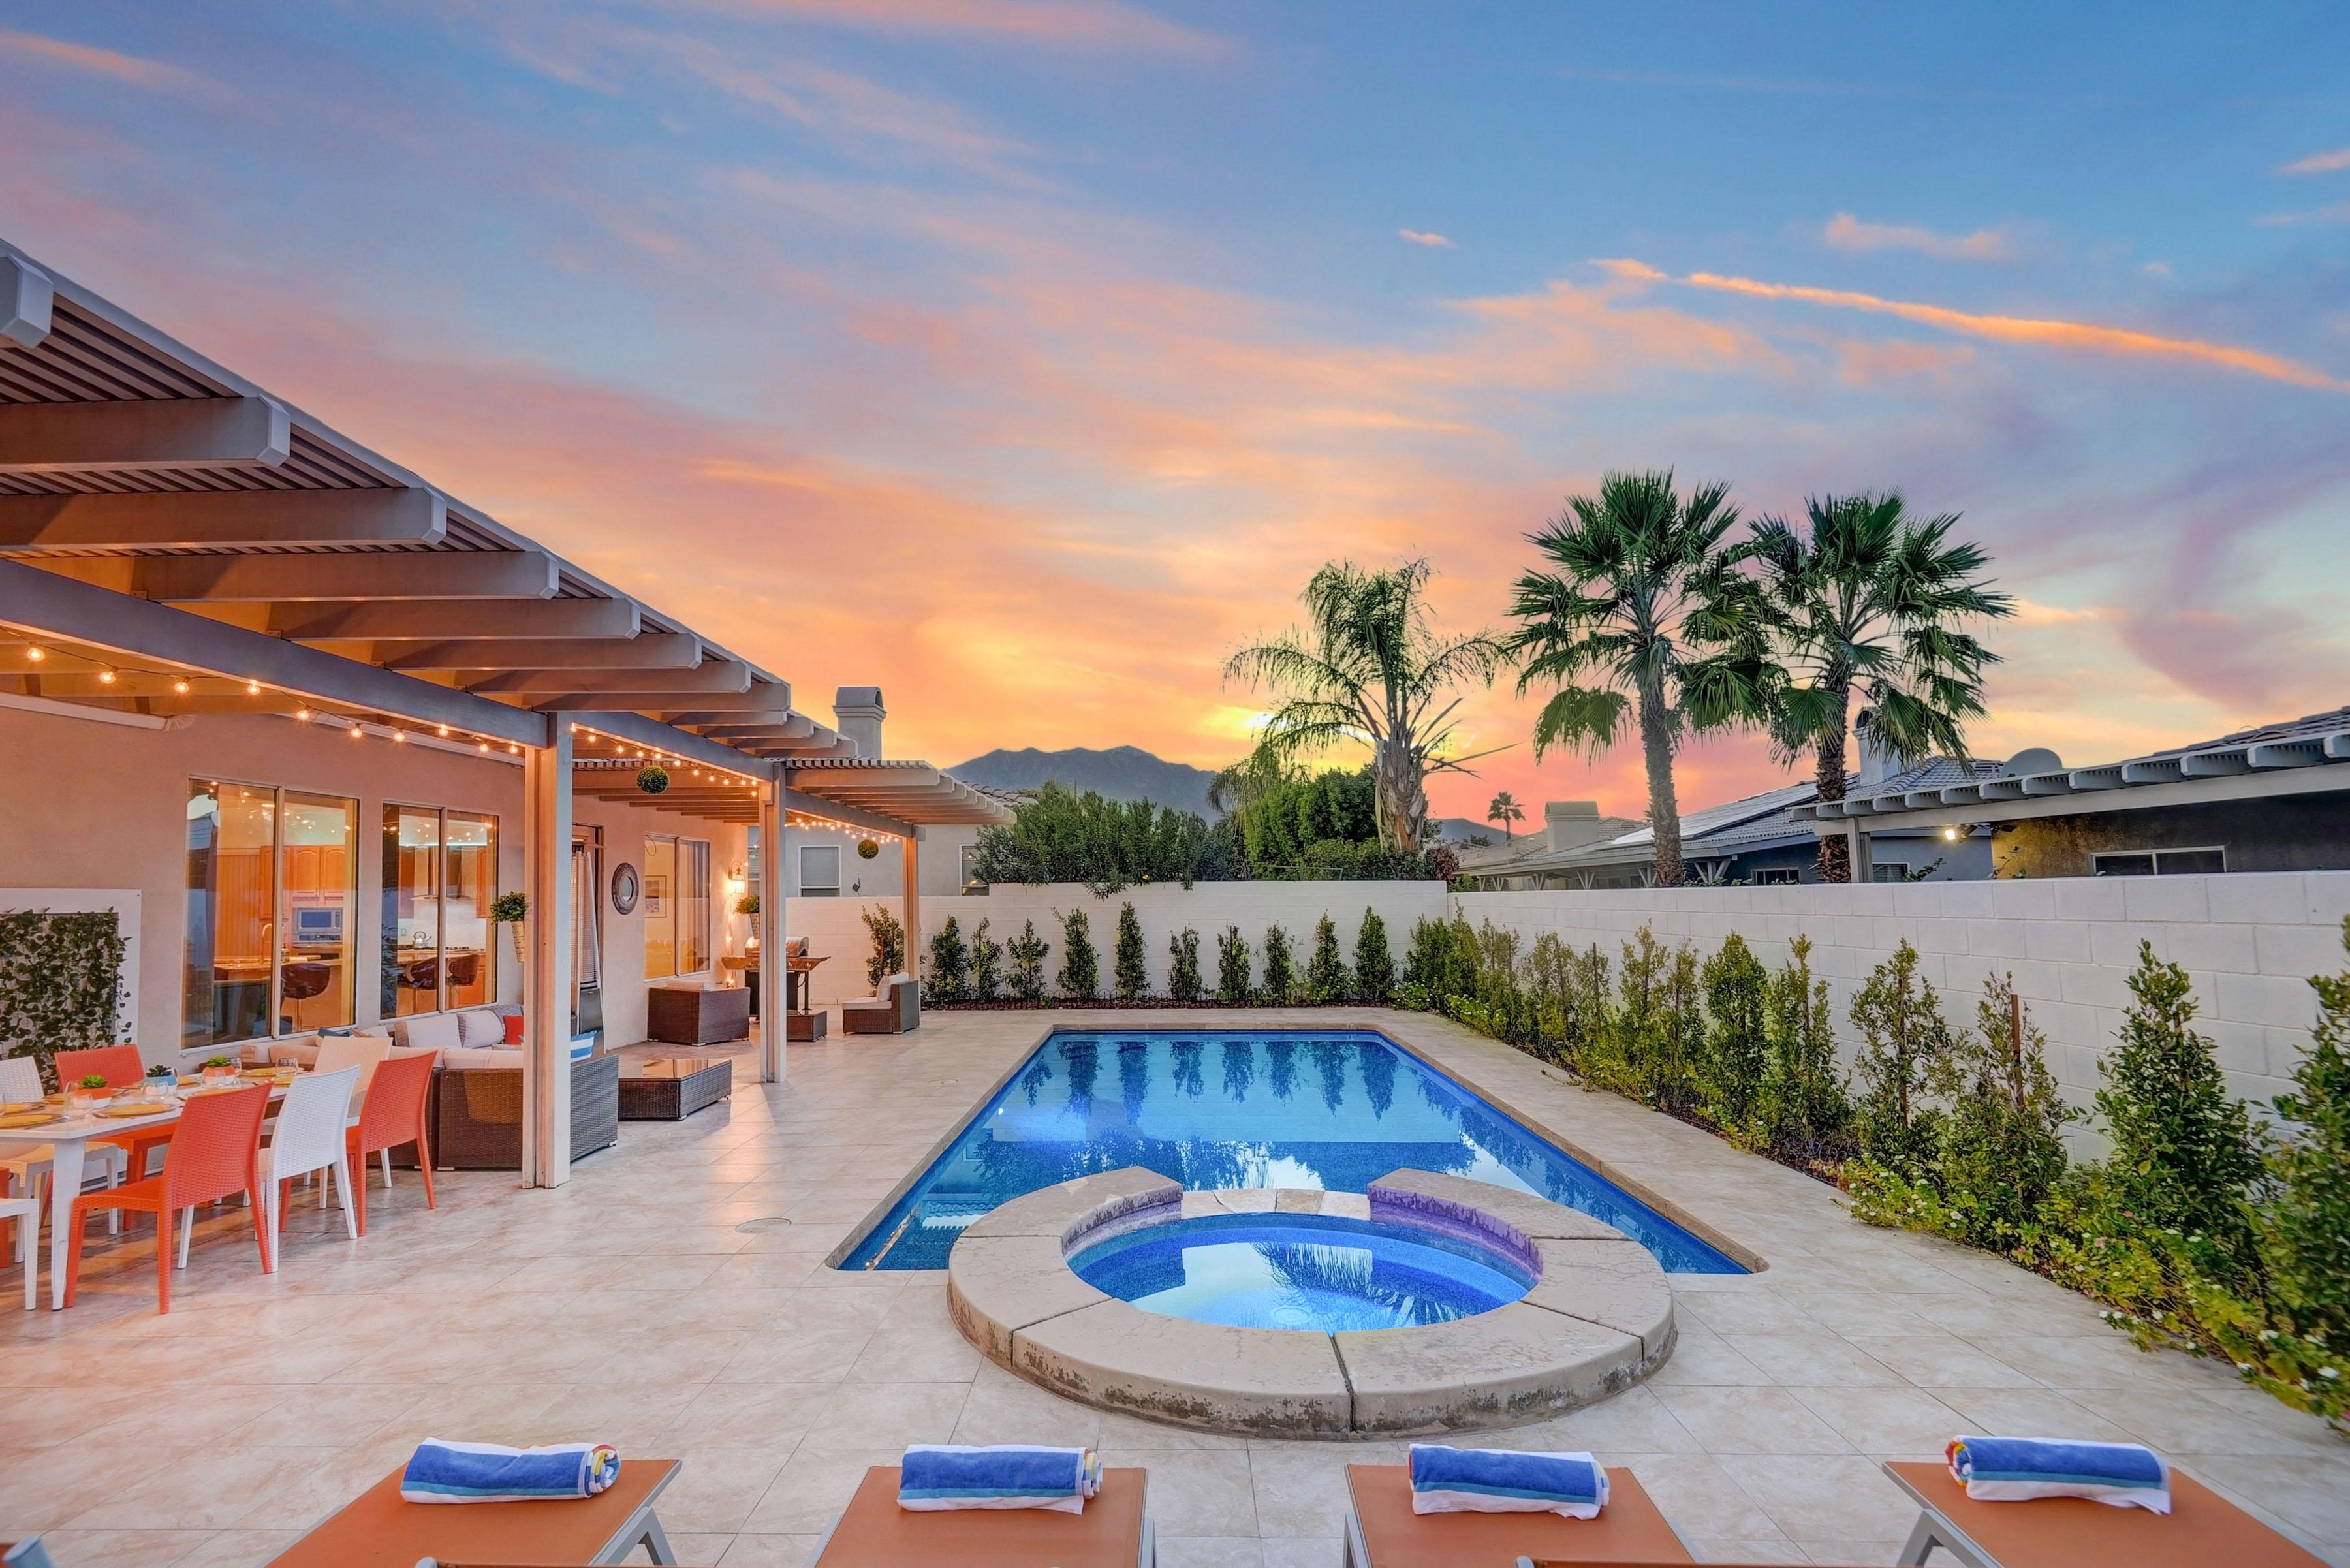 Welcome to Palm Springs! Enjoy sunsets by your gorgeous private pool with desert mountain views. Your spectacular rental is professionally managed and maintained by TurnKey Vacation Rentals.